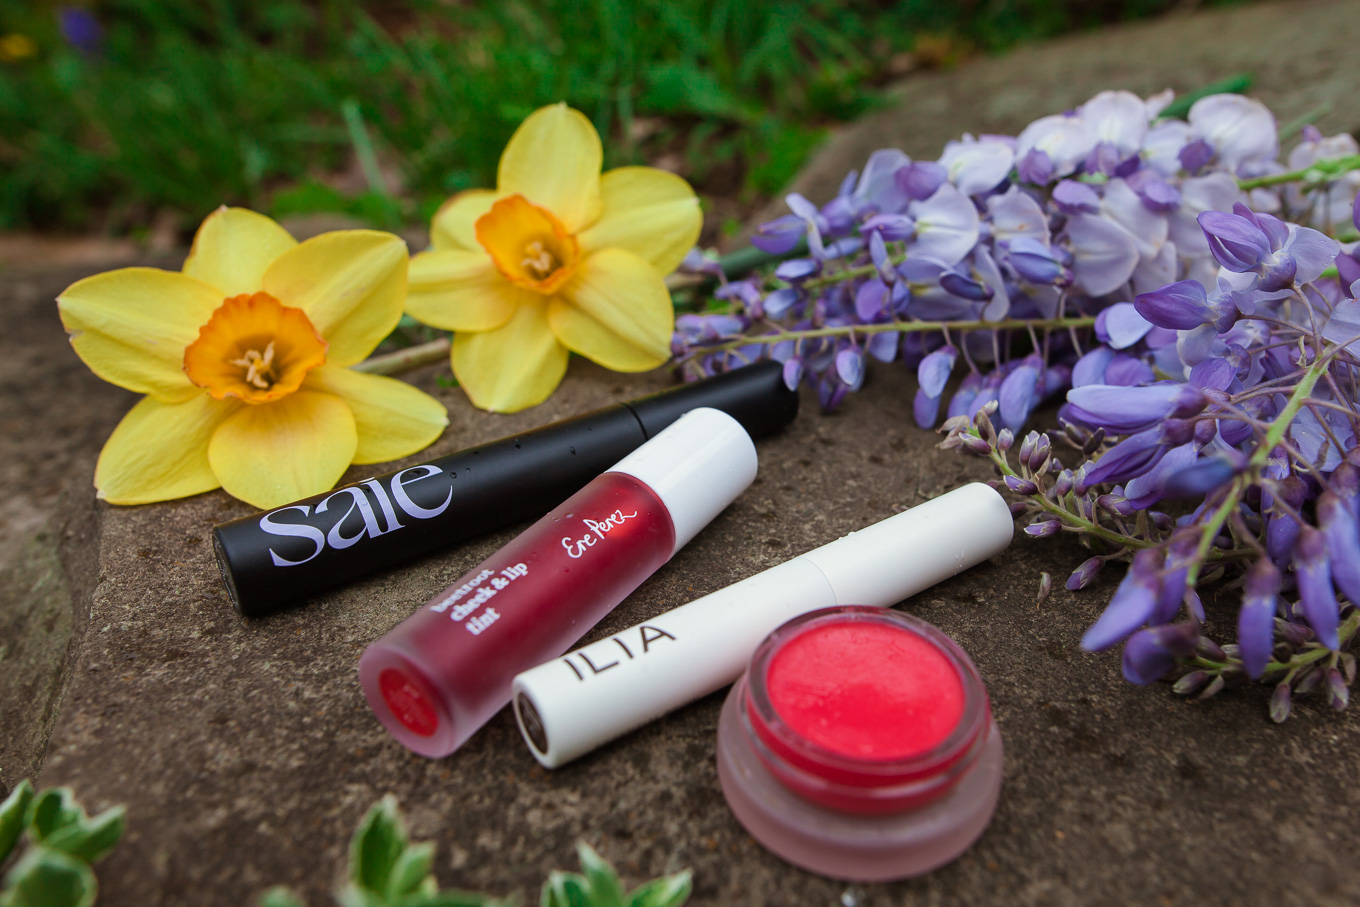 Clean Beauty by popular Chicago beauty blog, Glass of Glam: image of Saie Mascara, Ere Perez Lip and Cheek Tint, and Ilia Brow Gel next to some daffodil and lilac blossoms.